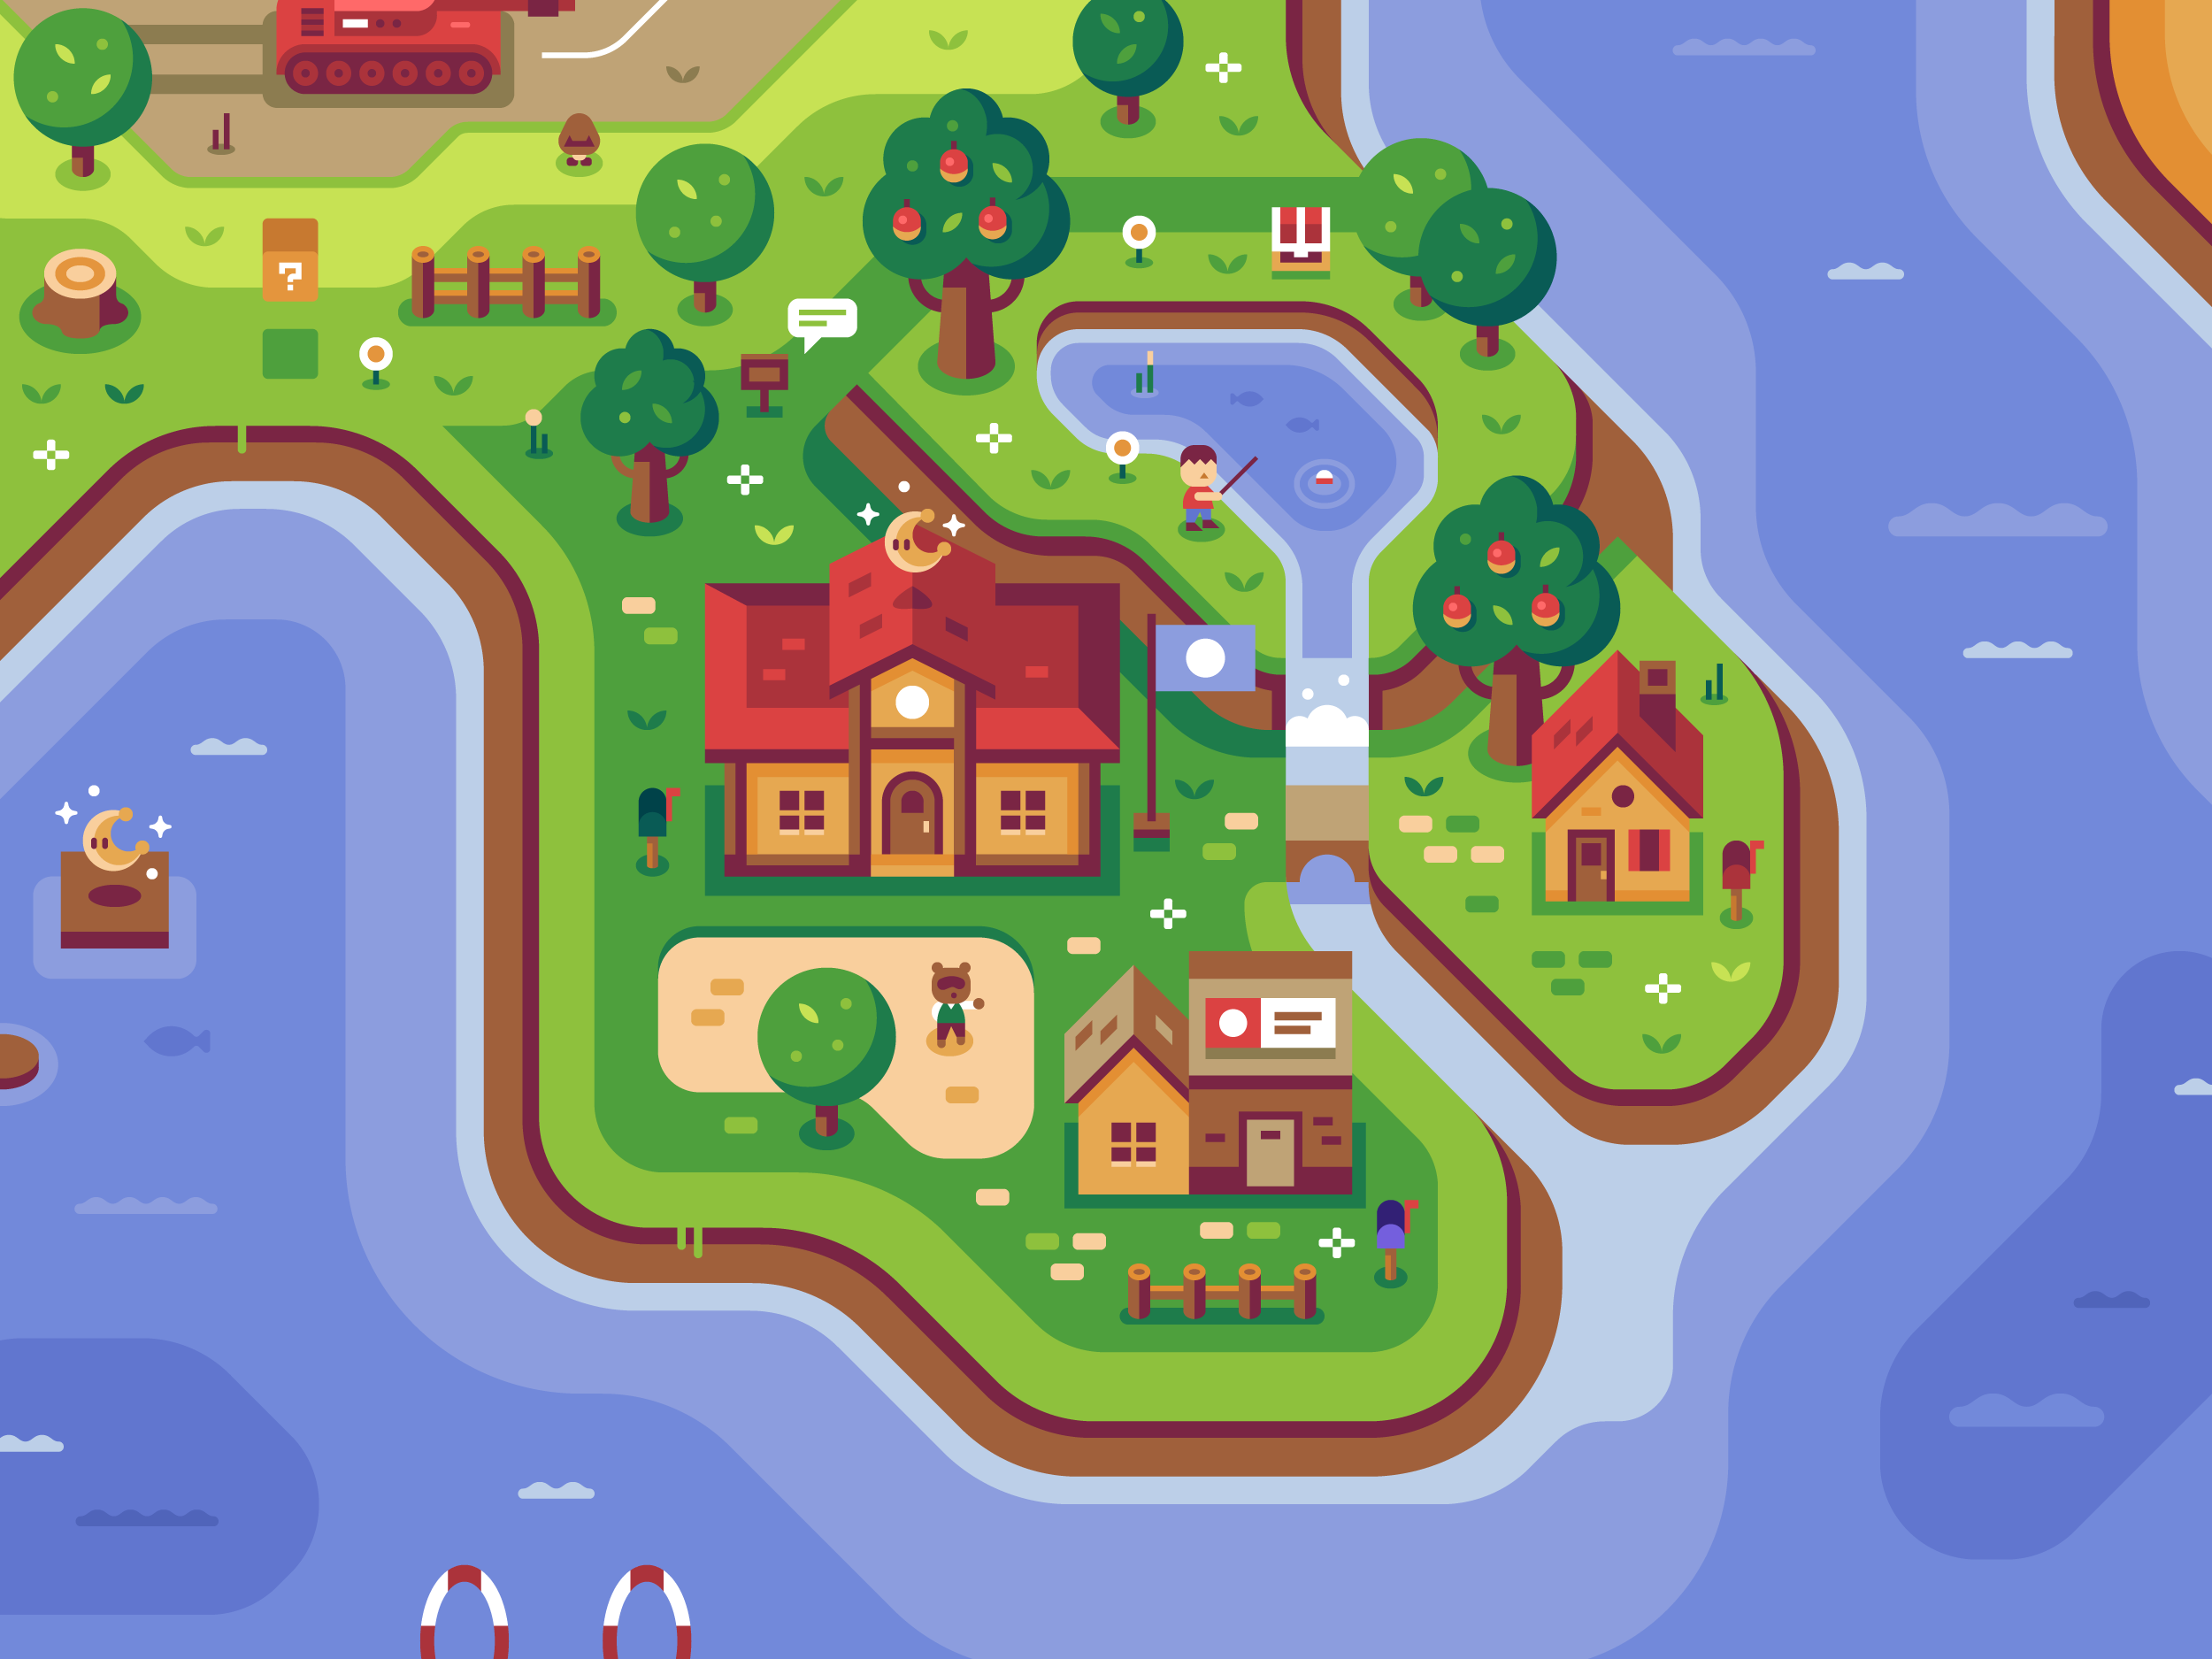 Animal Crossing, Discord Office Mural illustrations by Matt Anderson and Canopy Design and Illustration